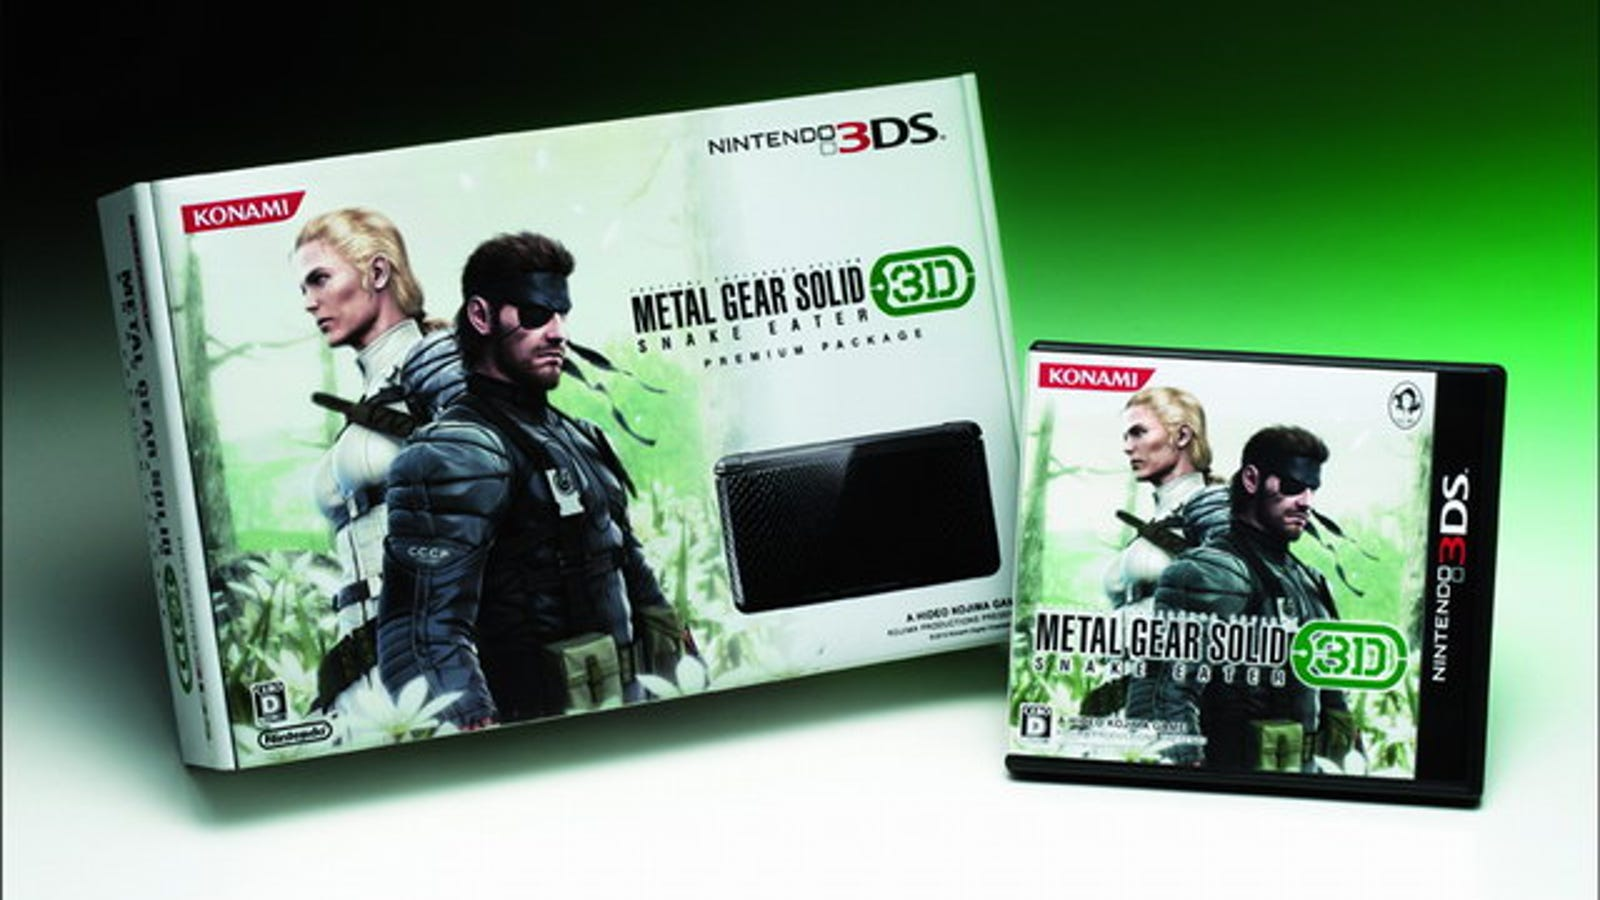 Want that Metal Gear 3DS? You Won't Like This